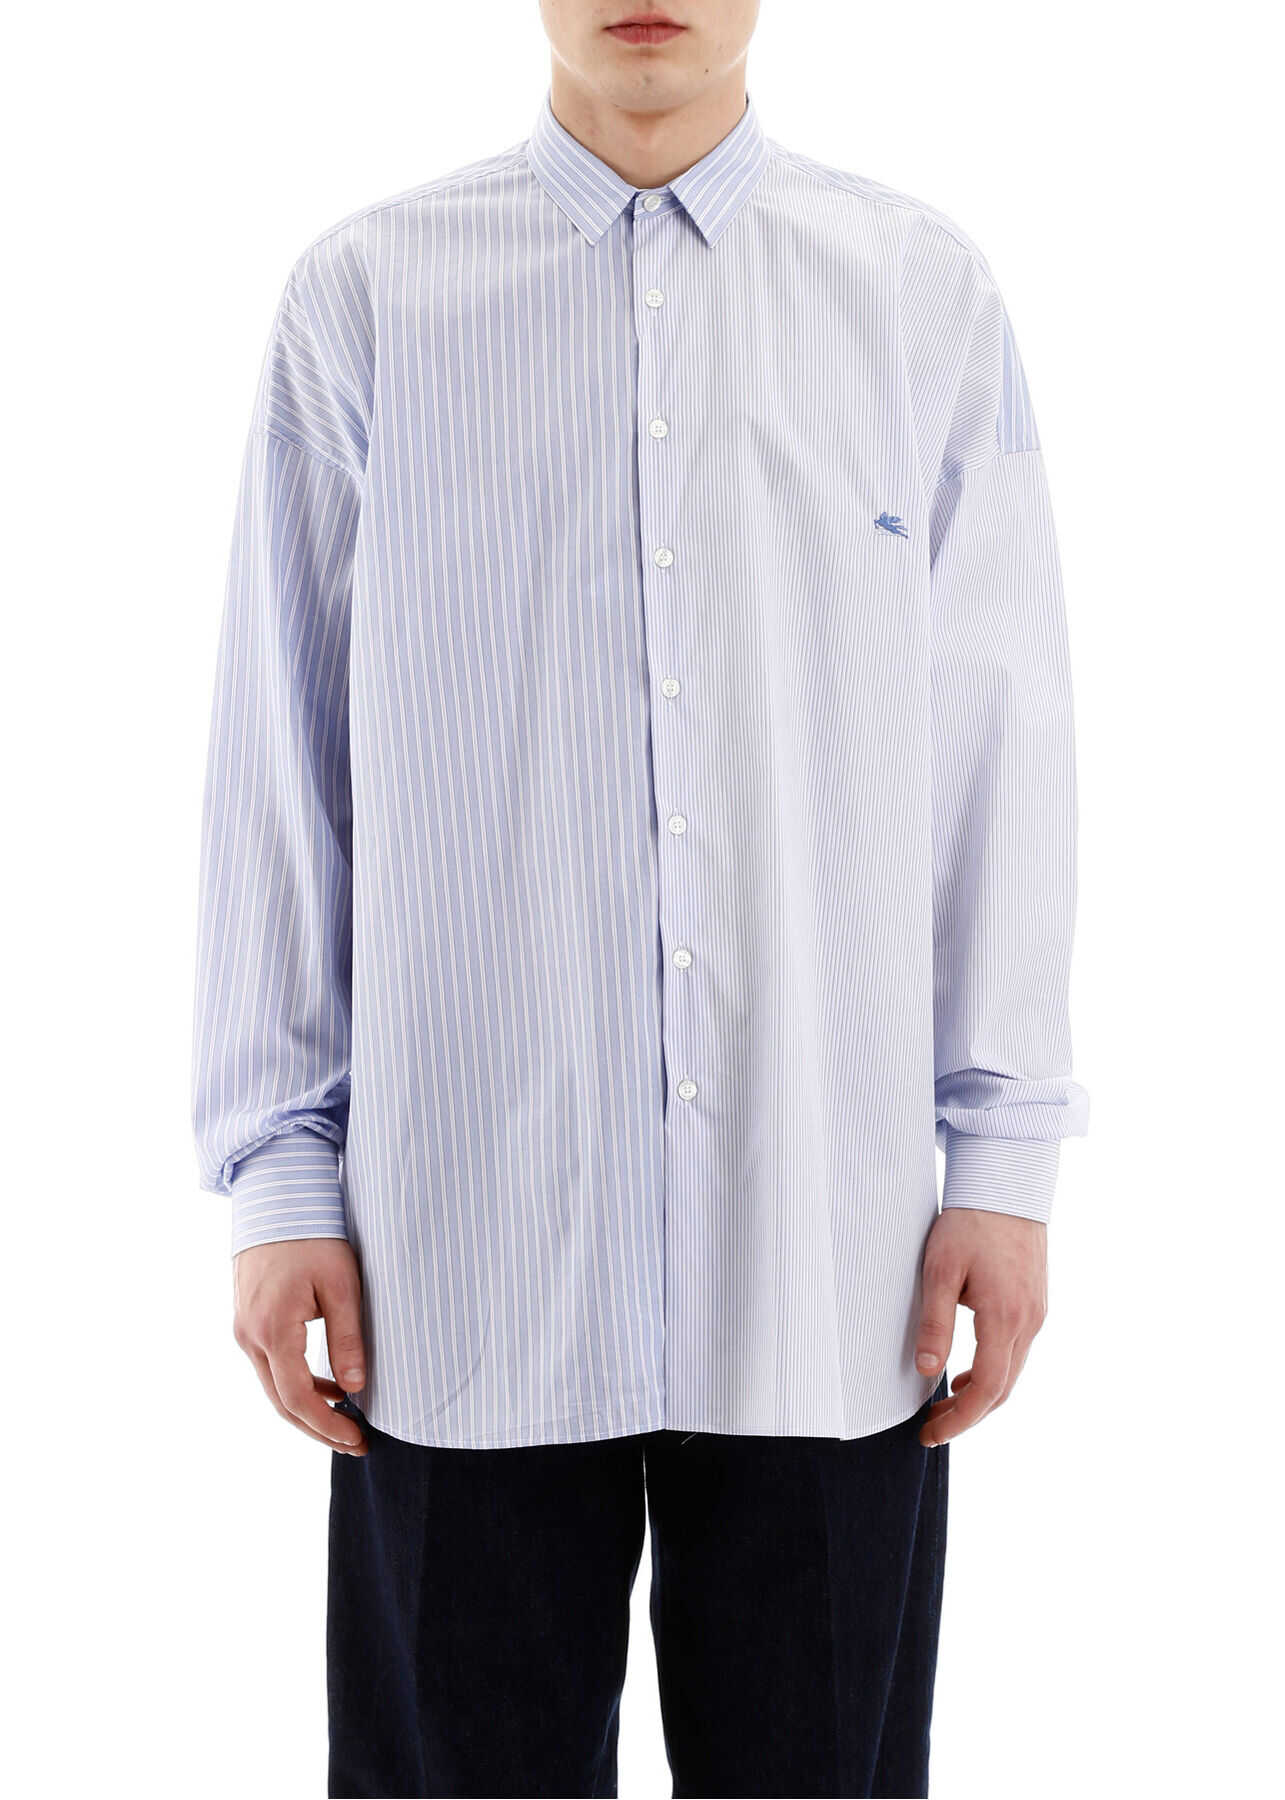 ETRO Multi Stripes Shirt AZZURRO